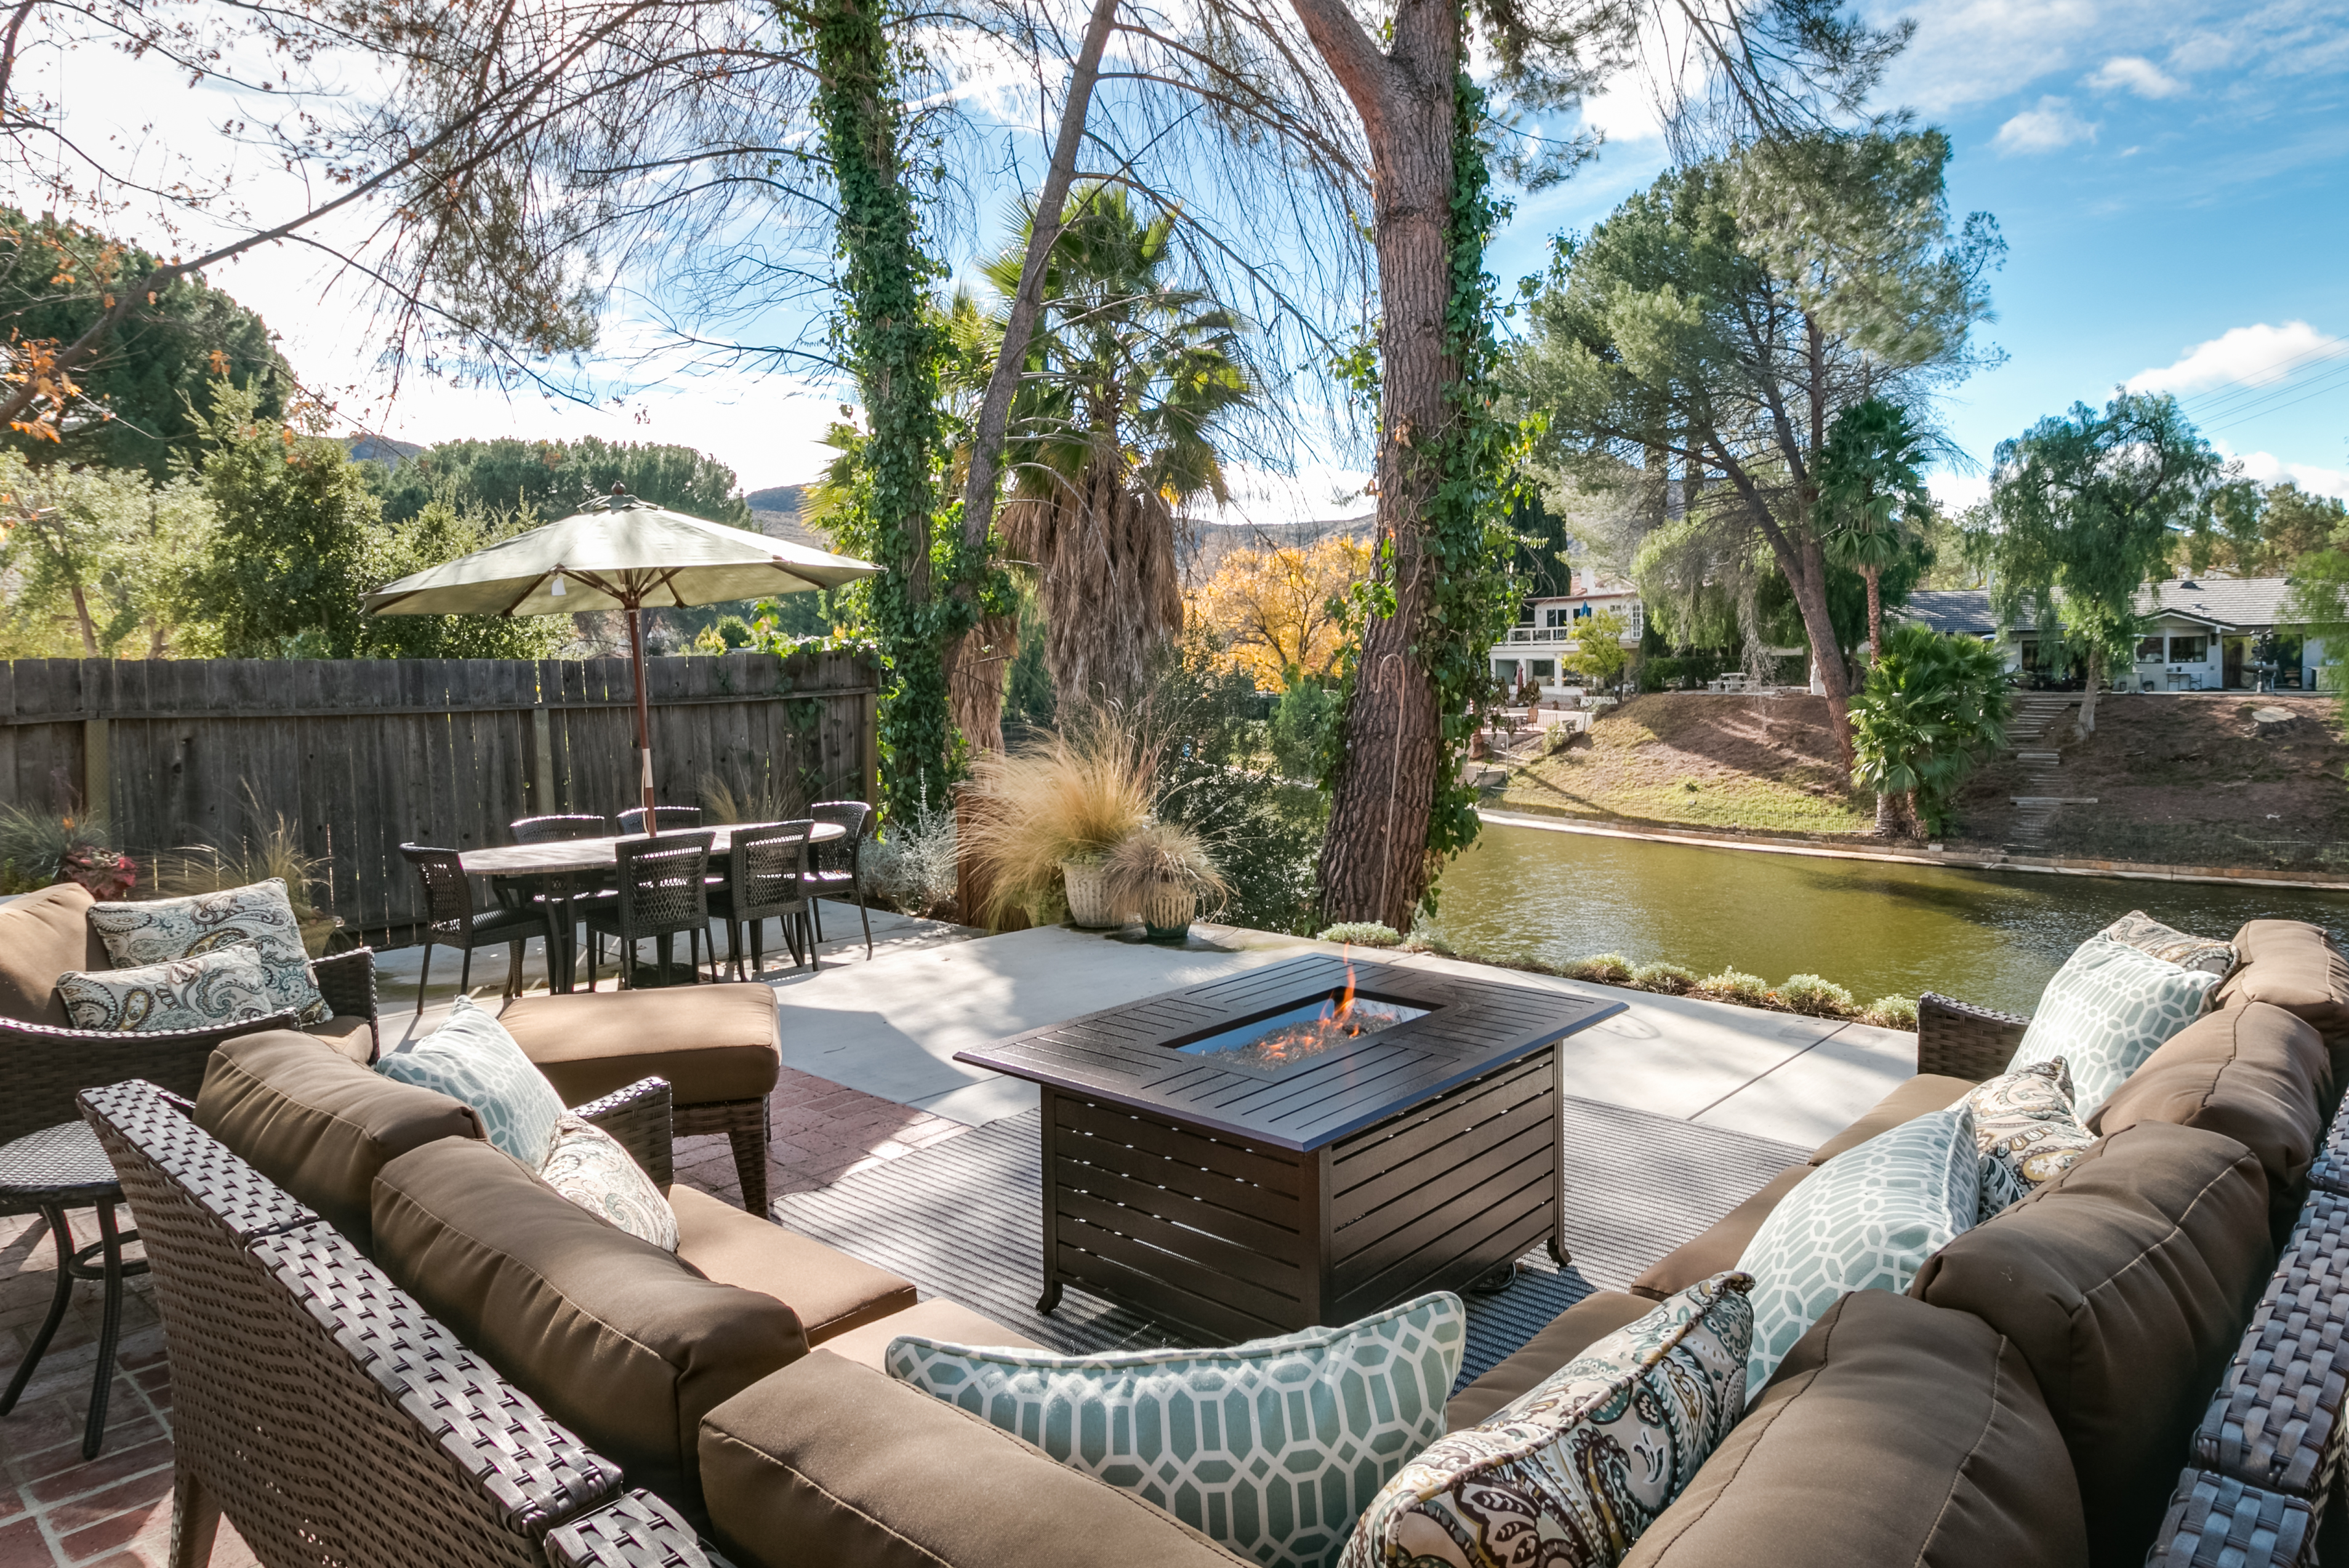 Agoura Hills CA Vacation Rental Welcome to Agoura